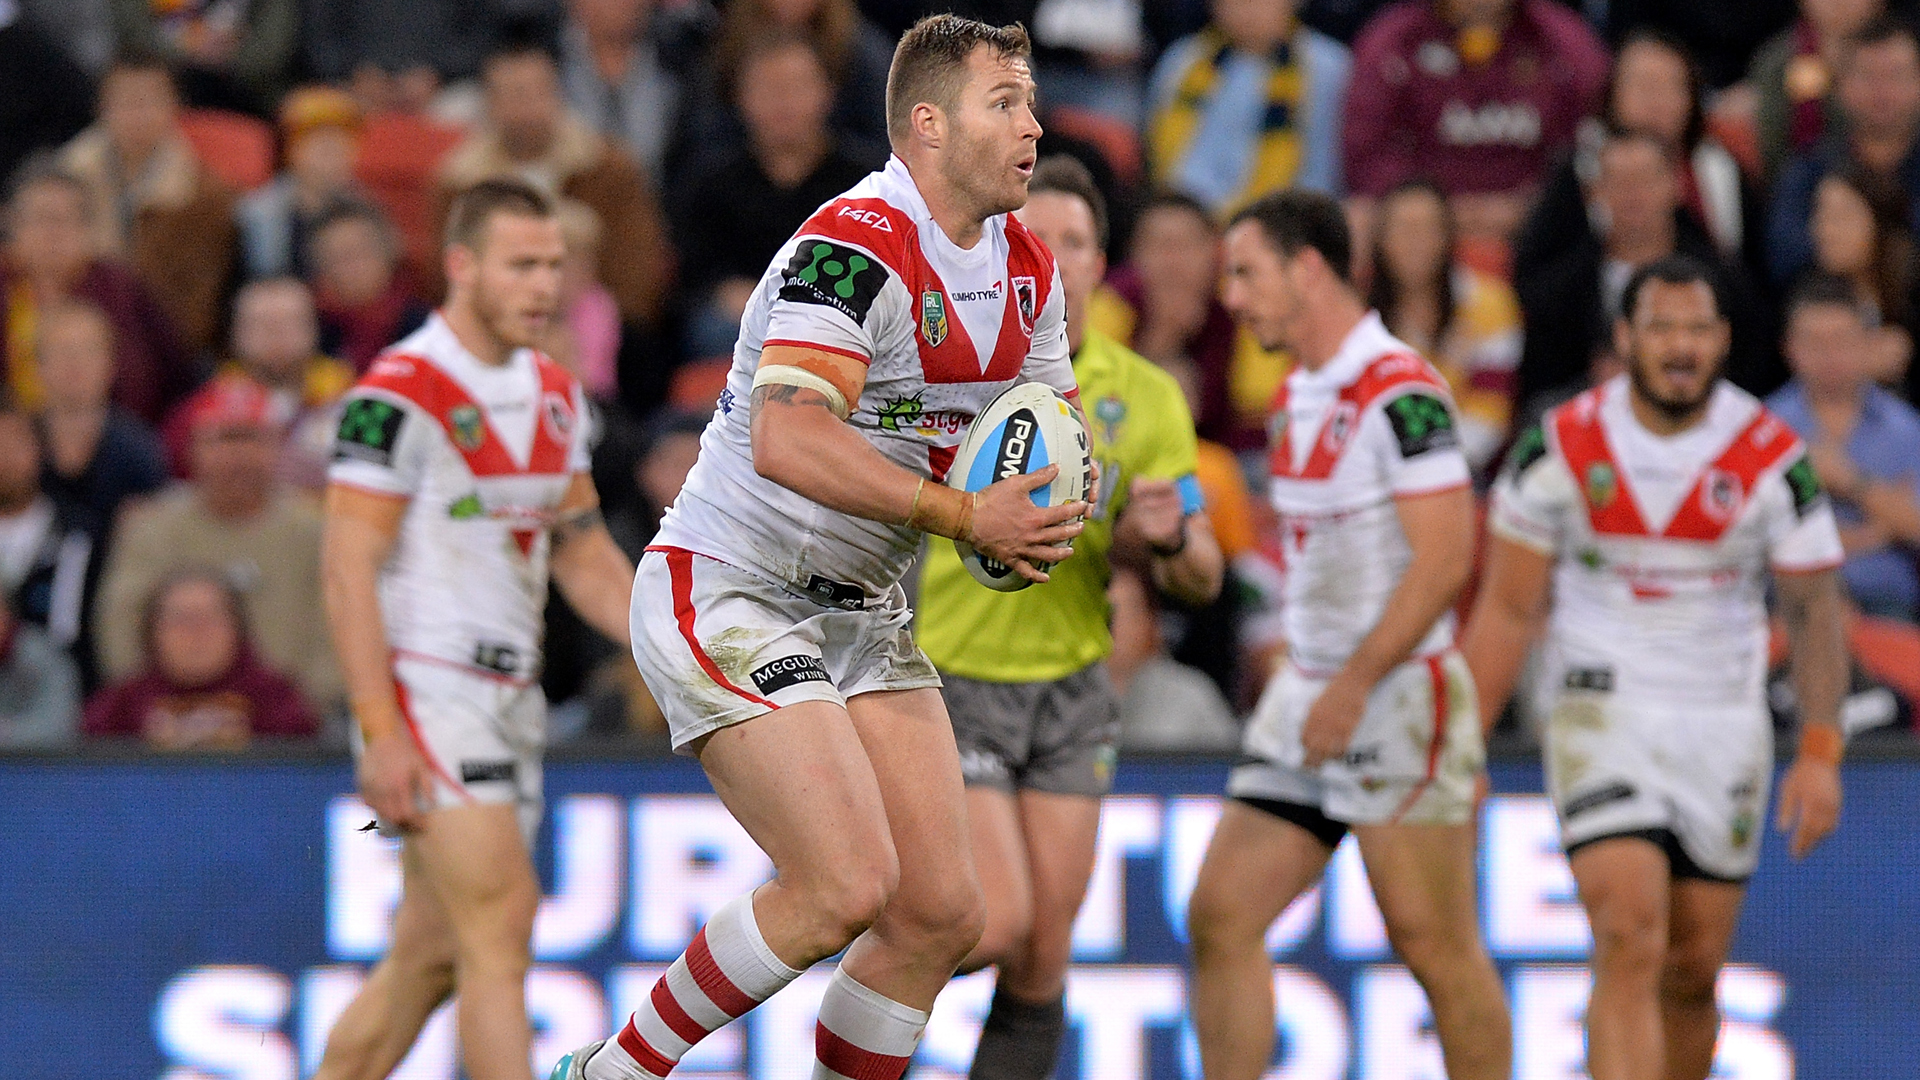 The St George Illawarra Dragons confirmed the signing of forward Trent Merrin.